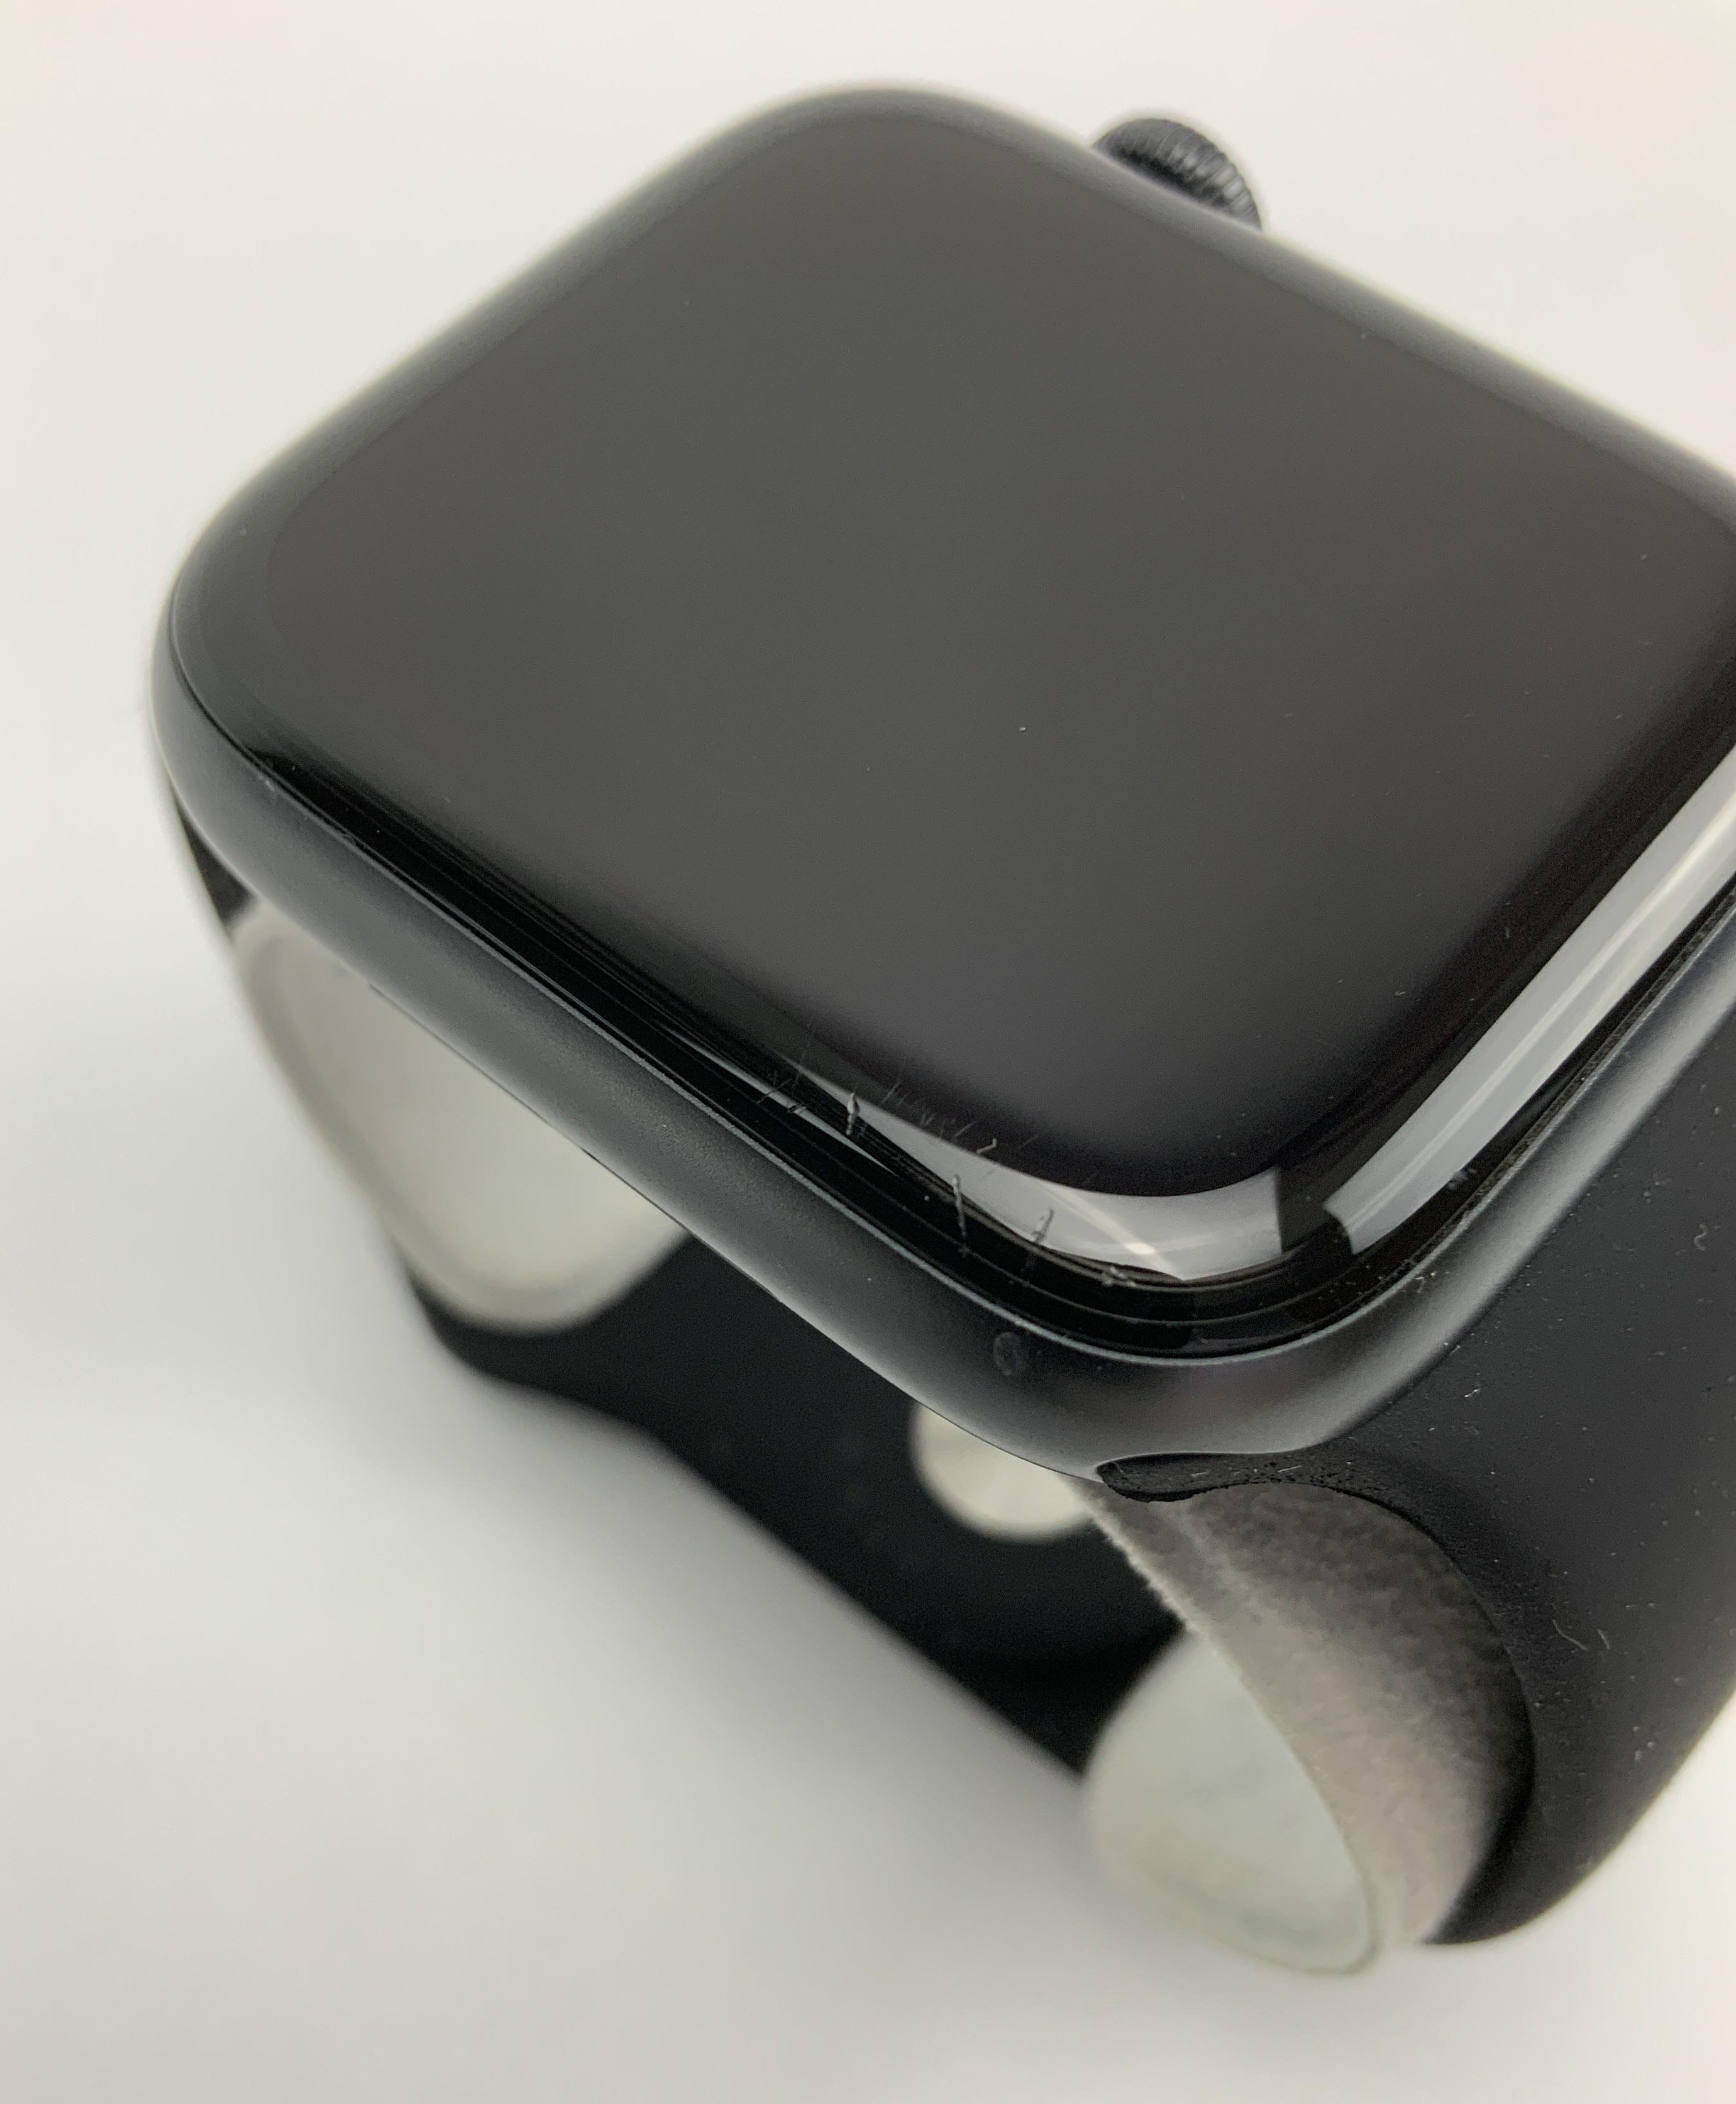 Watch Series 6 Aluminum (44mm), Space Gray, image 4